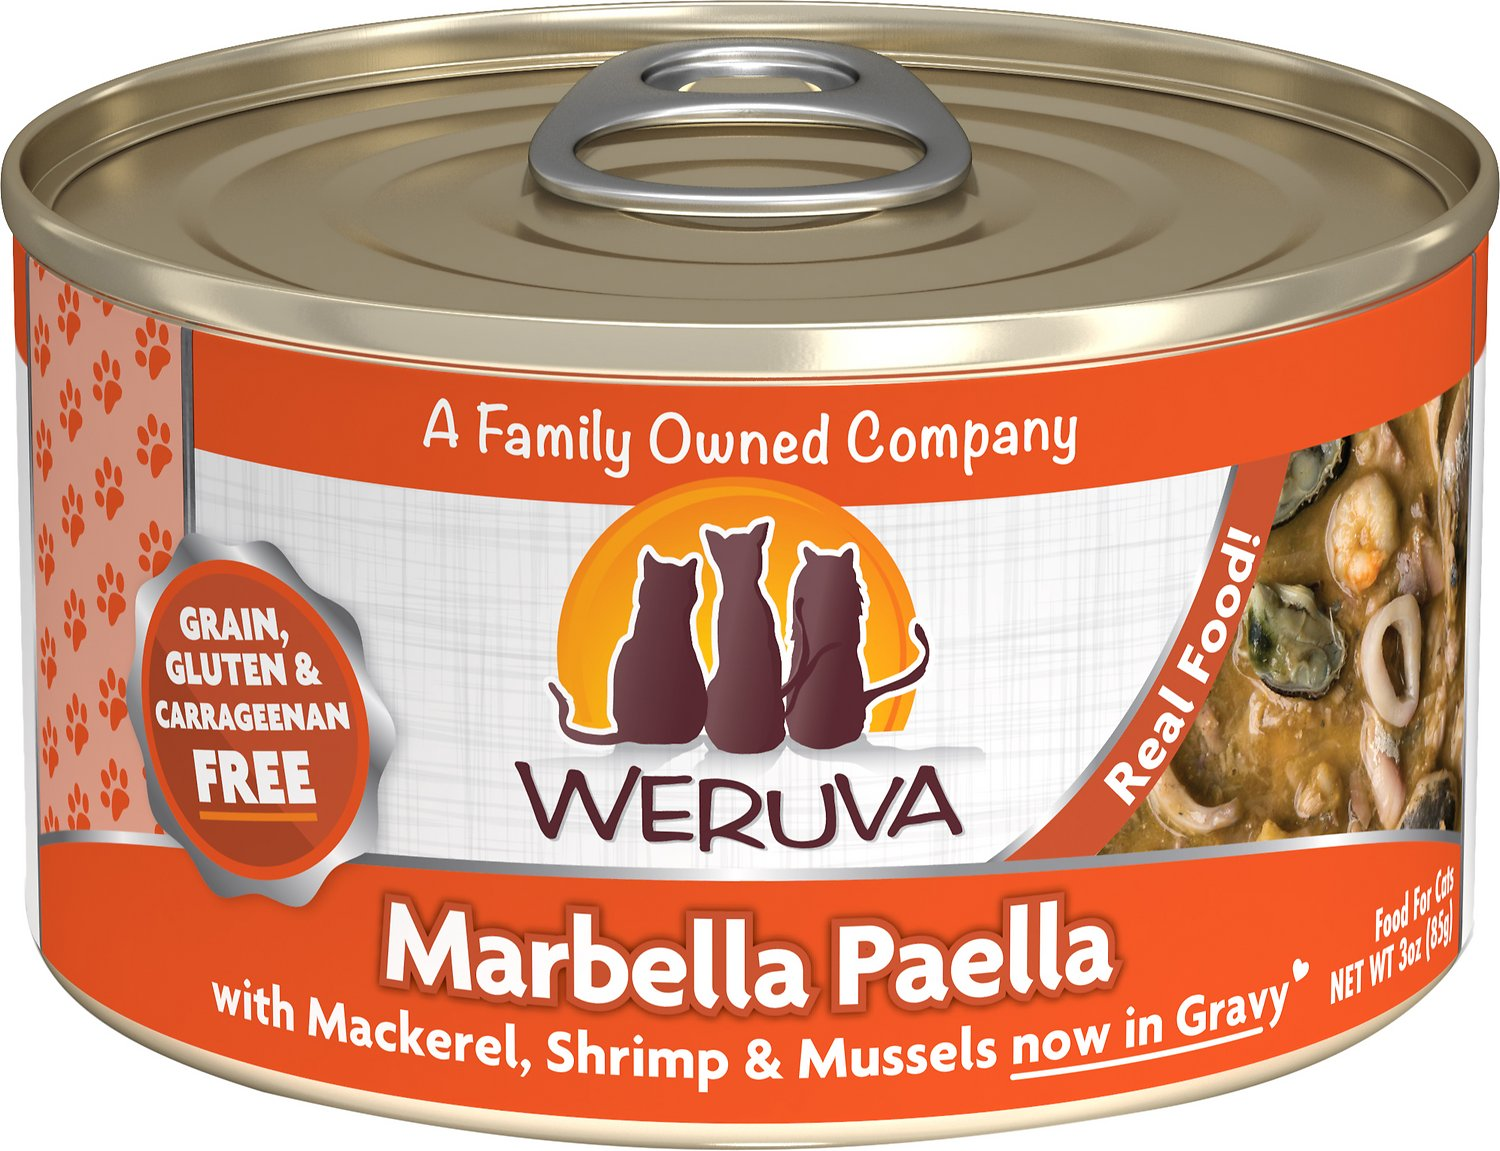 Weruva Cat Classic Marbella Paella with Mackerel, Shrimp & Mussels Grain-Free Wet Cat Food Image